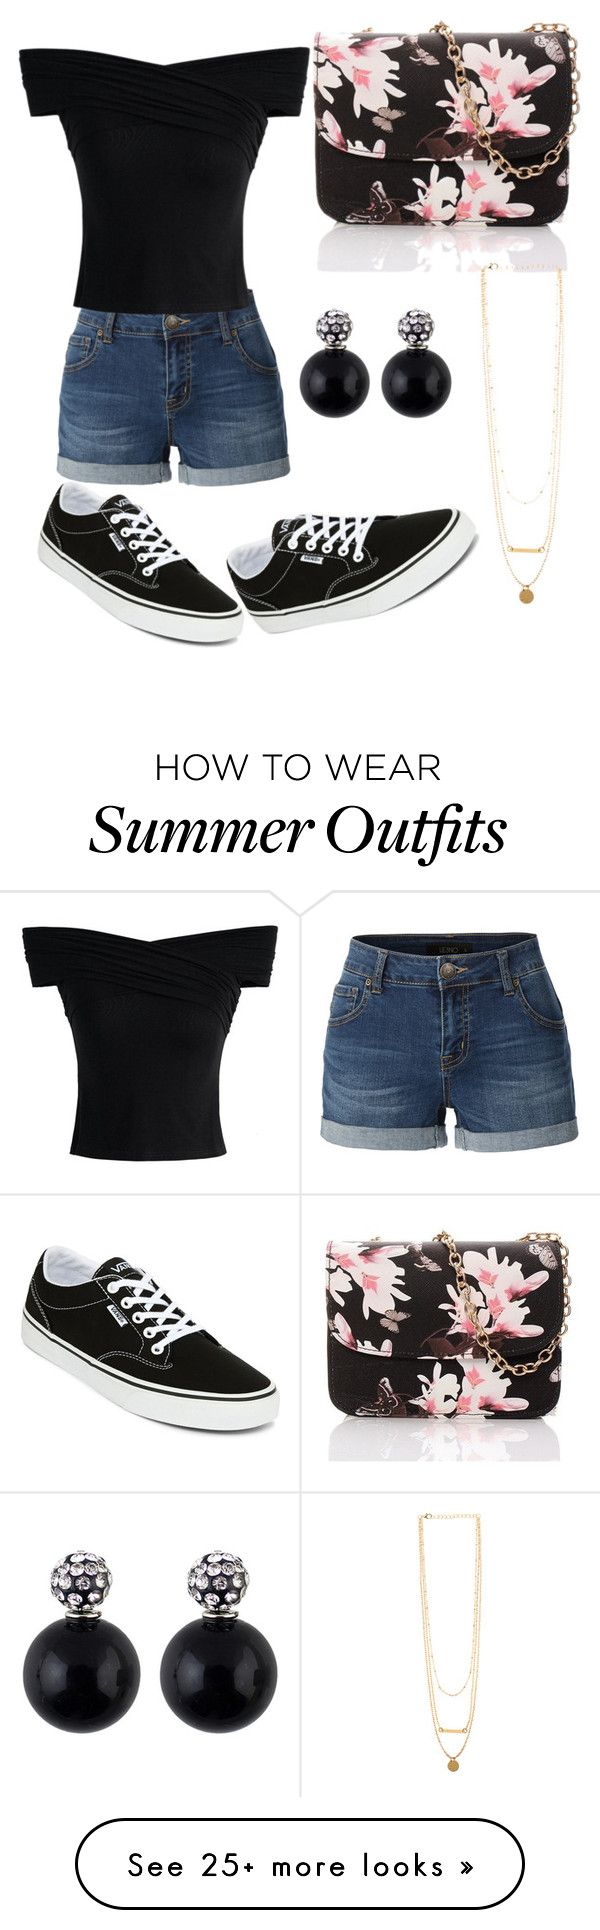 """Summer outfits #1"" by thediamondkitty on Polyvore featuring LE3NO, Vans and Chicwish"